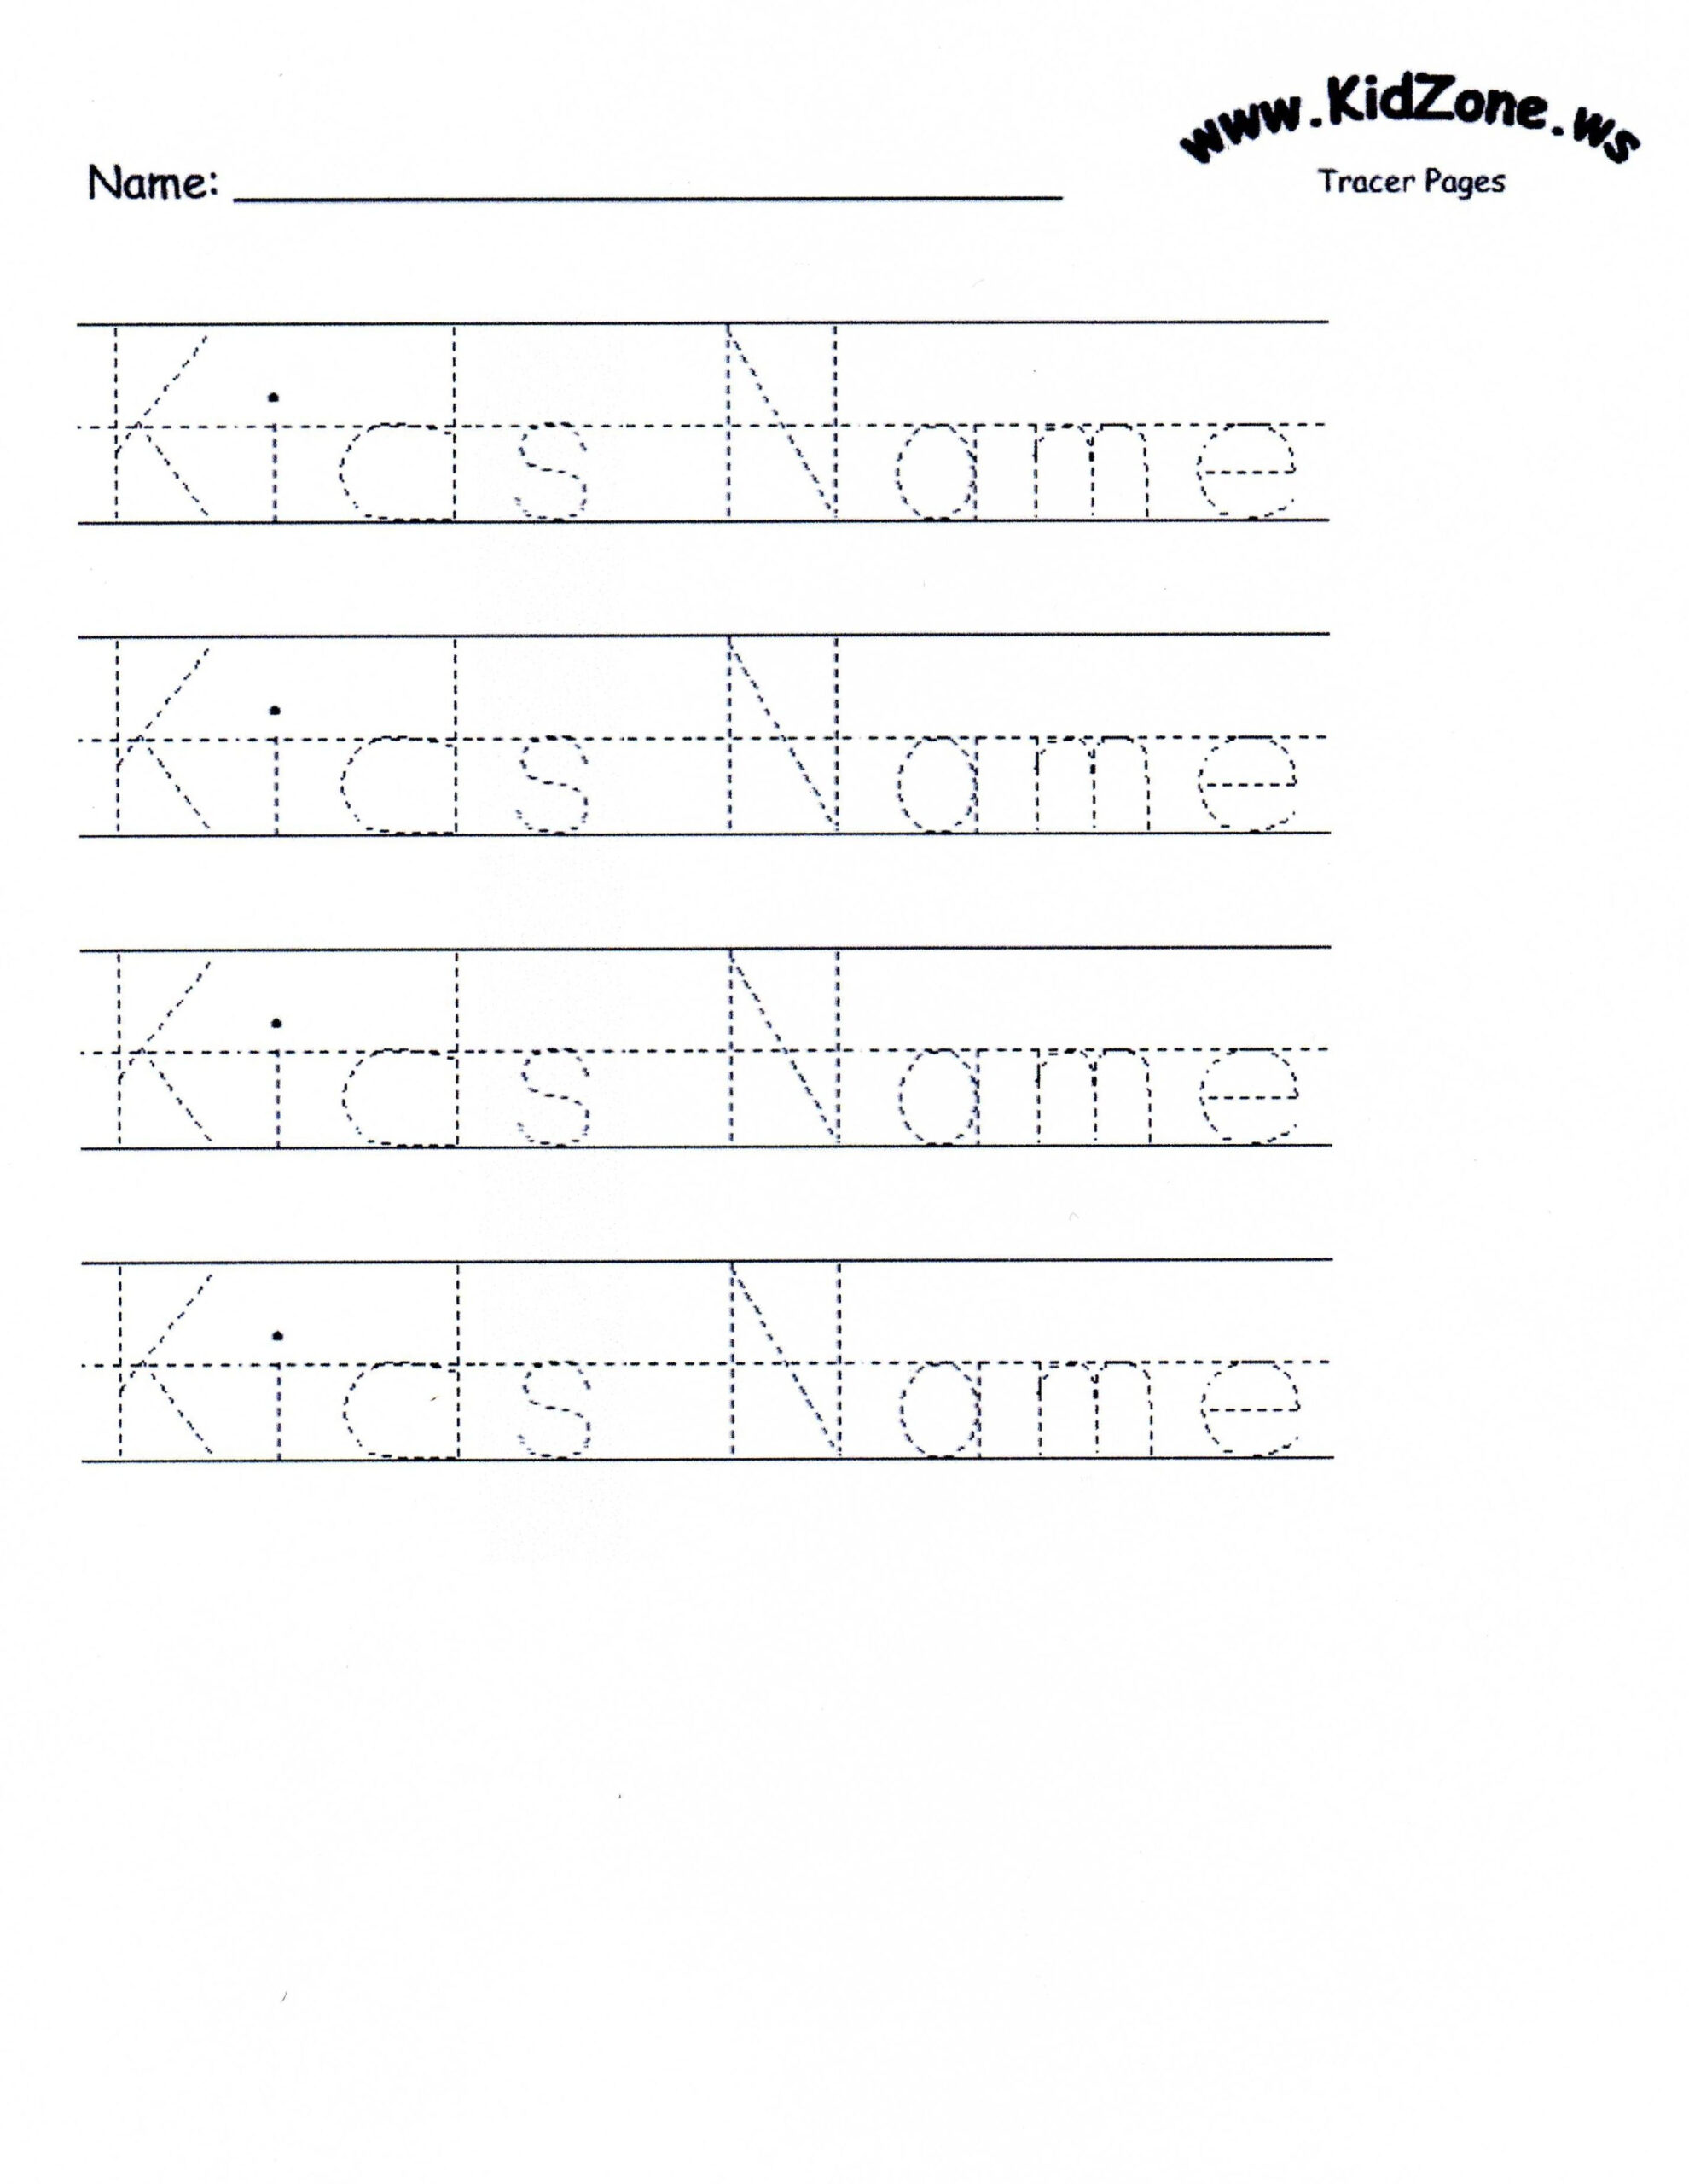 Custom Tracer Pages | Tracing Worksheets Preschool, Name regarding Name Tracing Worksheets For 3 Year Olds